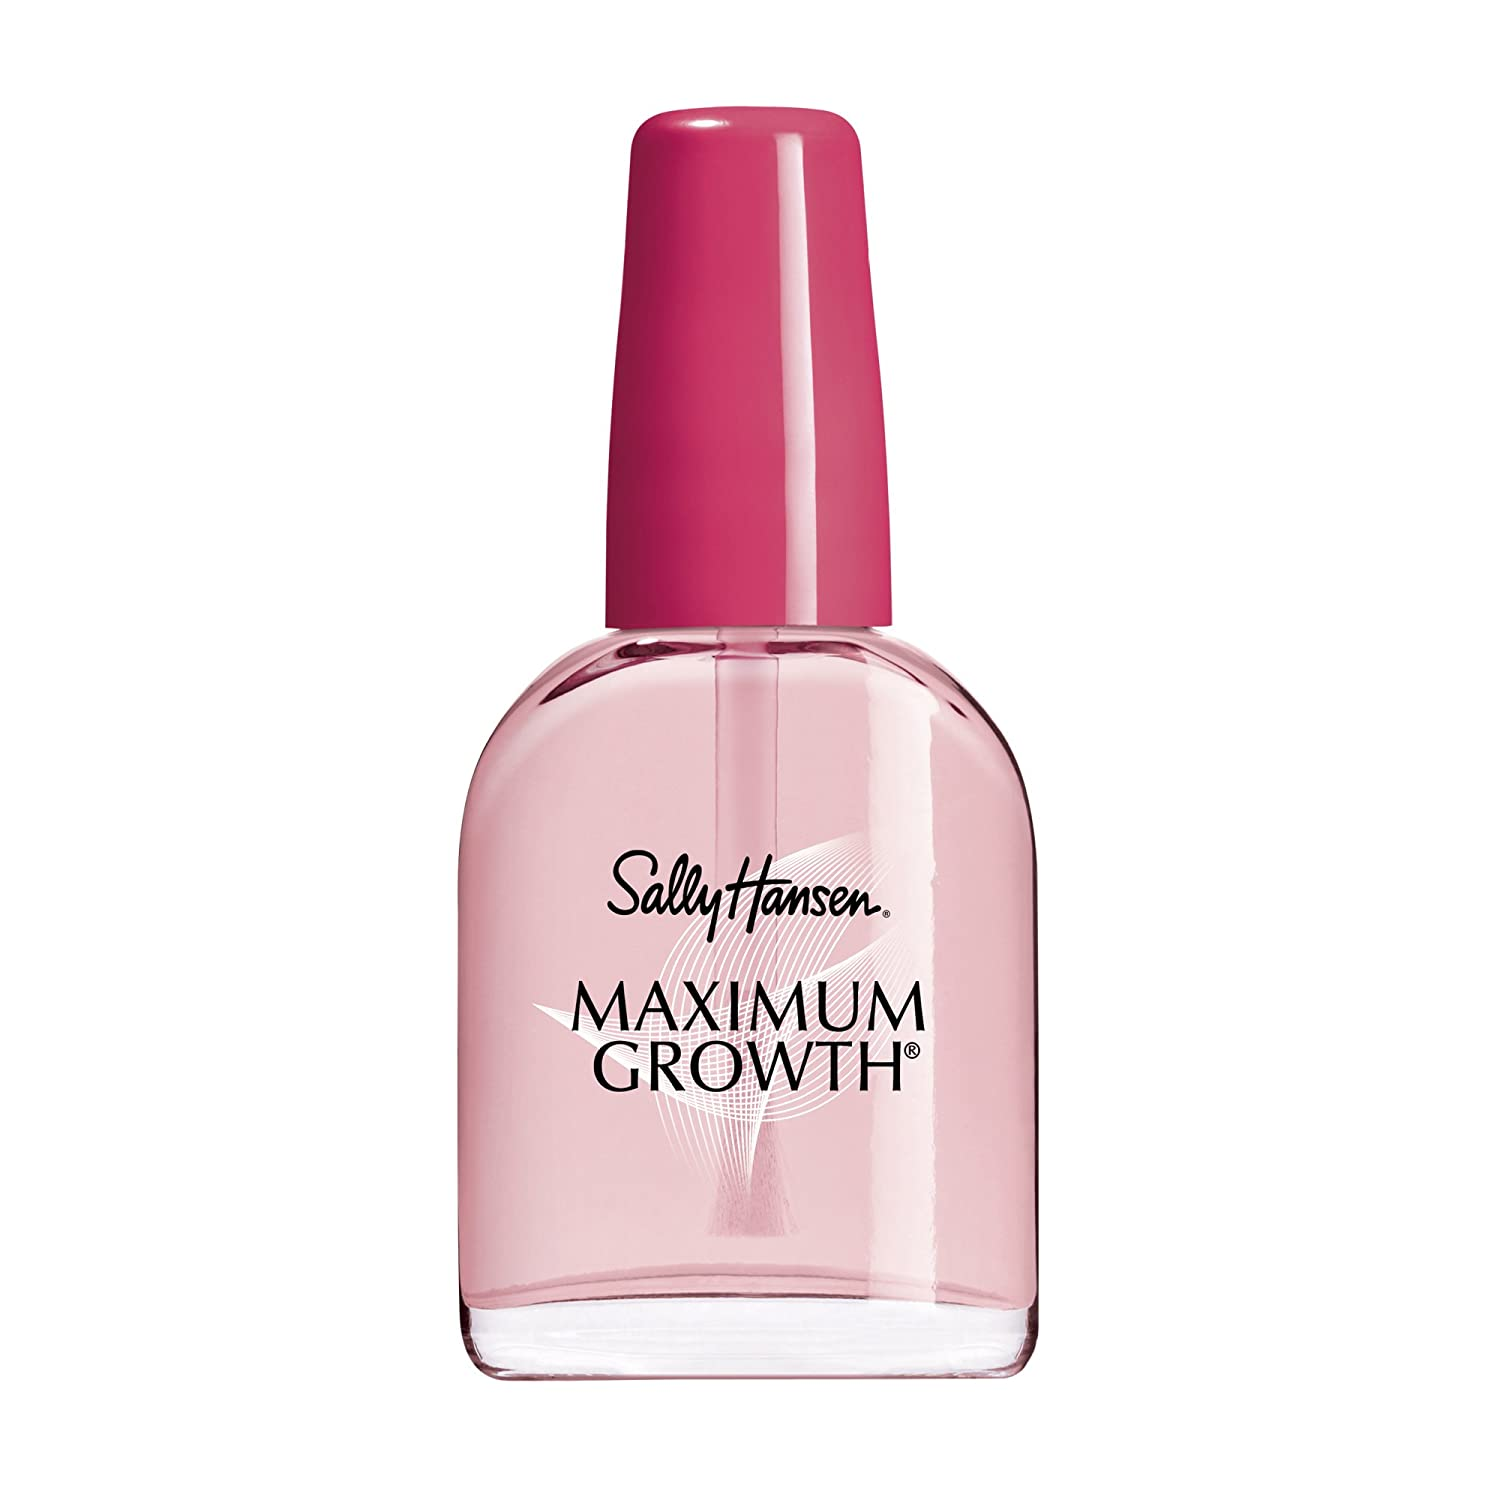 Sally Hansen Treatment Maximum Growth, 39201, 0.45 Fluid Ounce